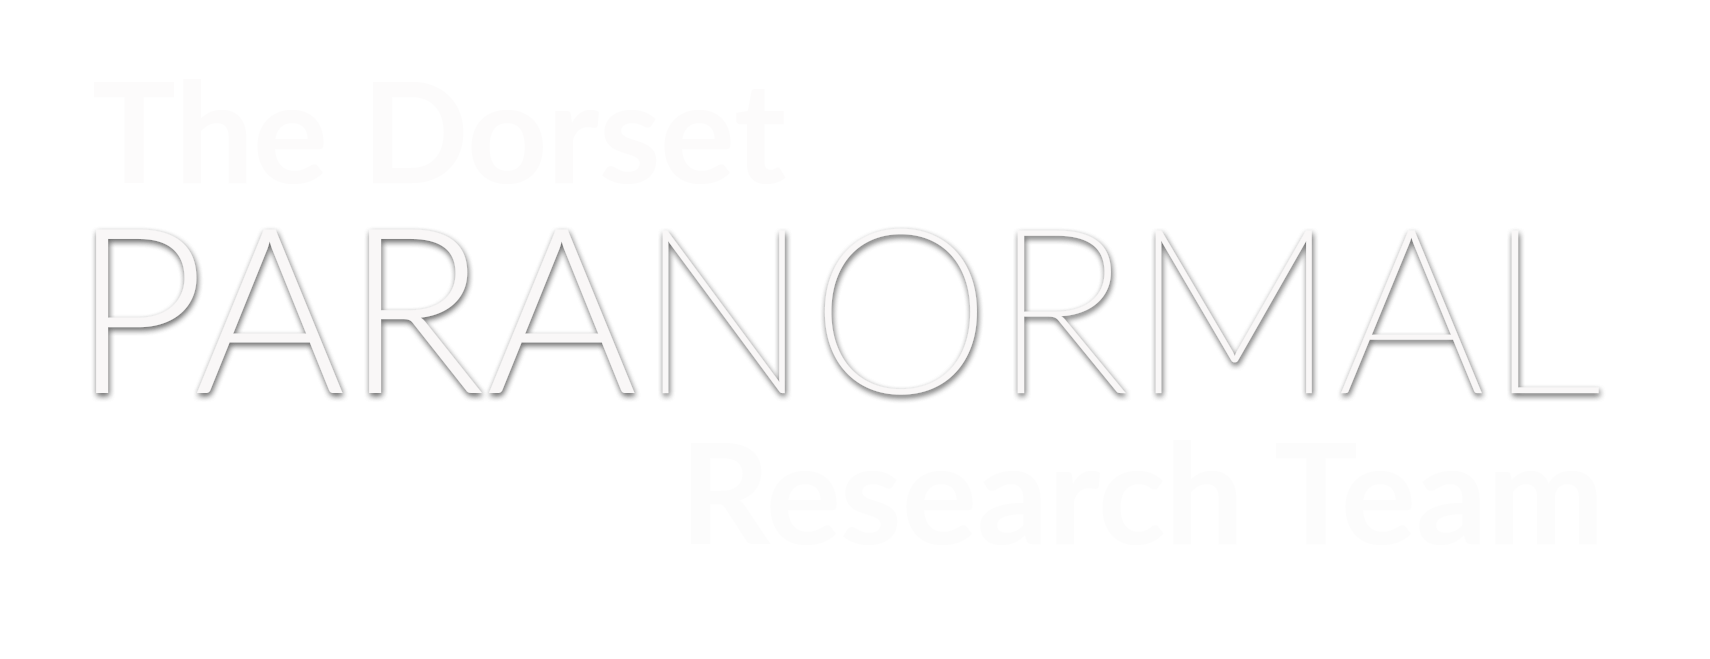 The Dorset Paranormal Research Team